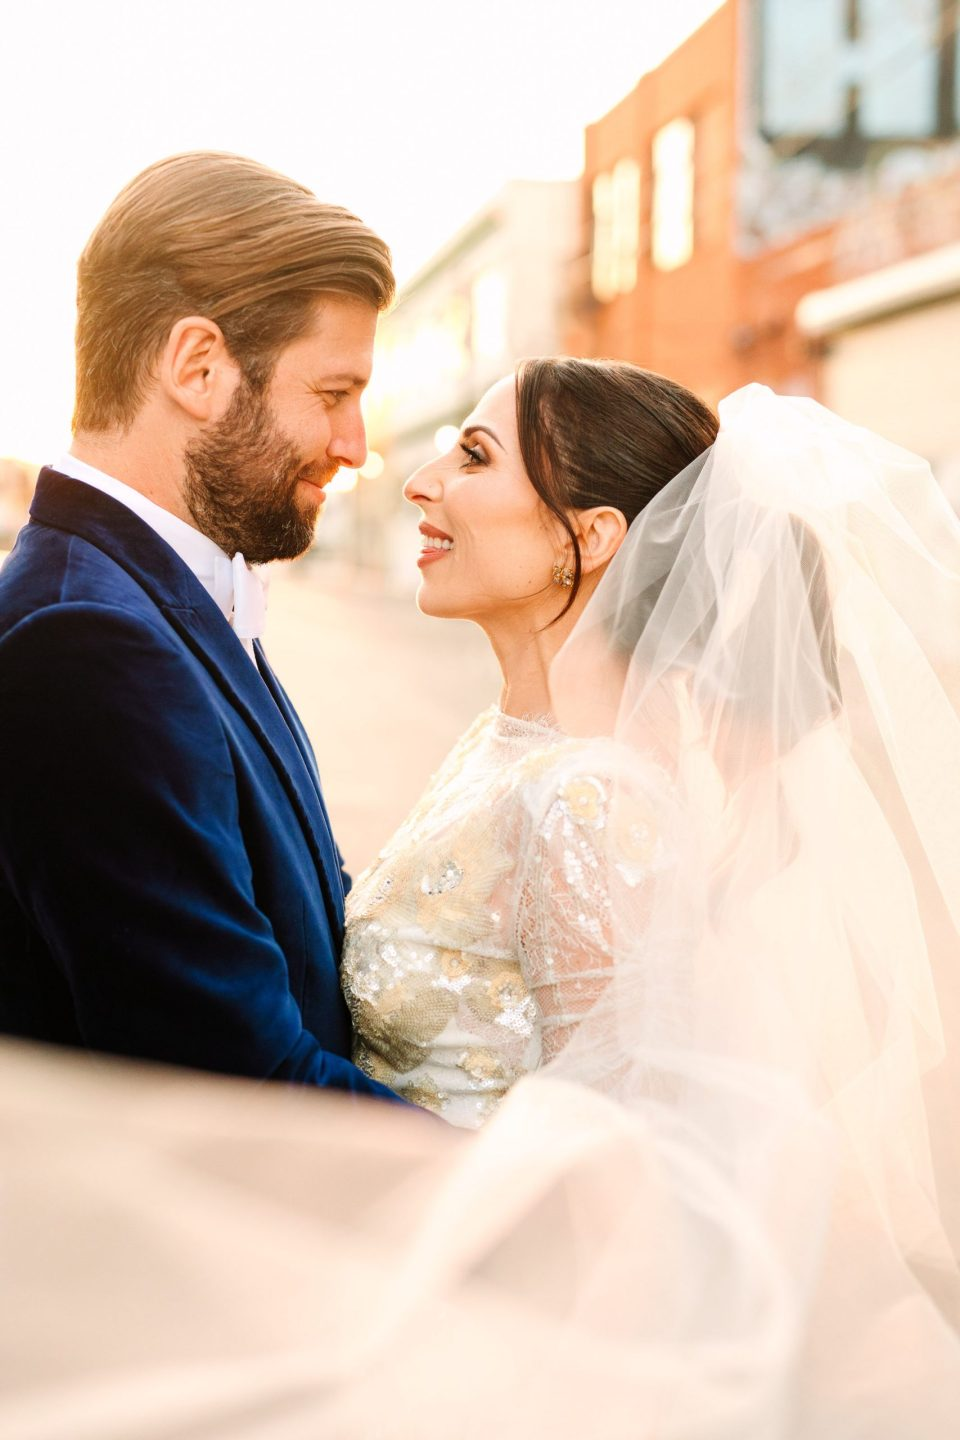 Wedding portrait with veil by Mary Costa Photography